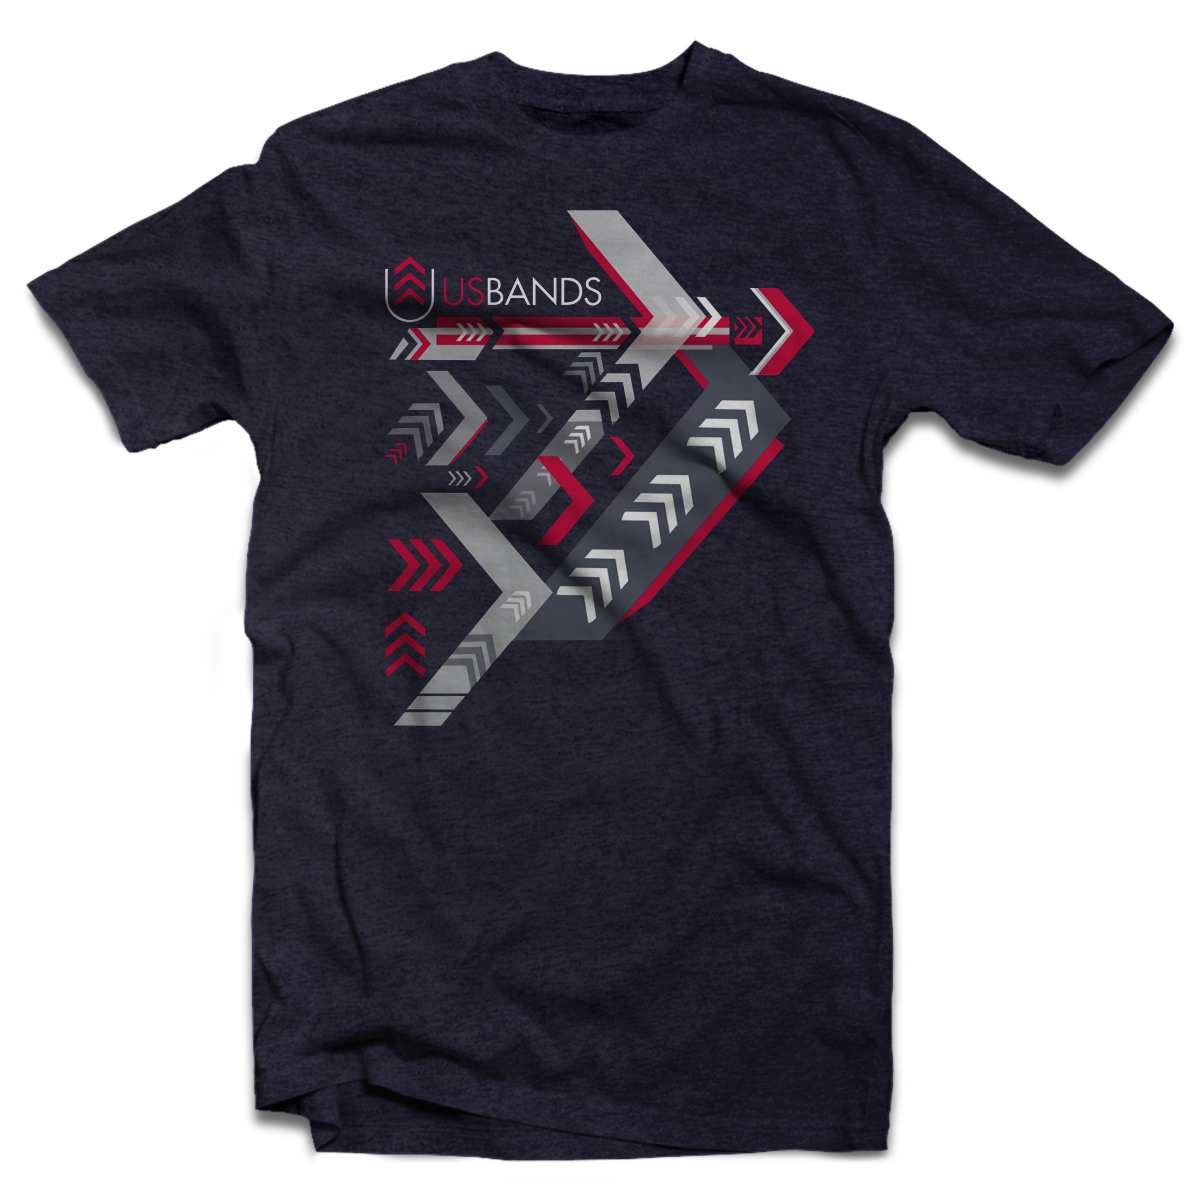 USBands Chevron Shirt